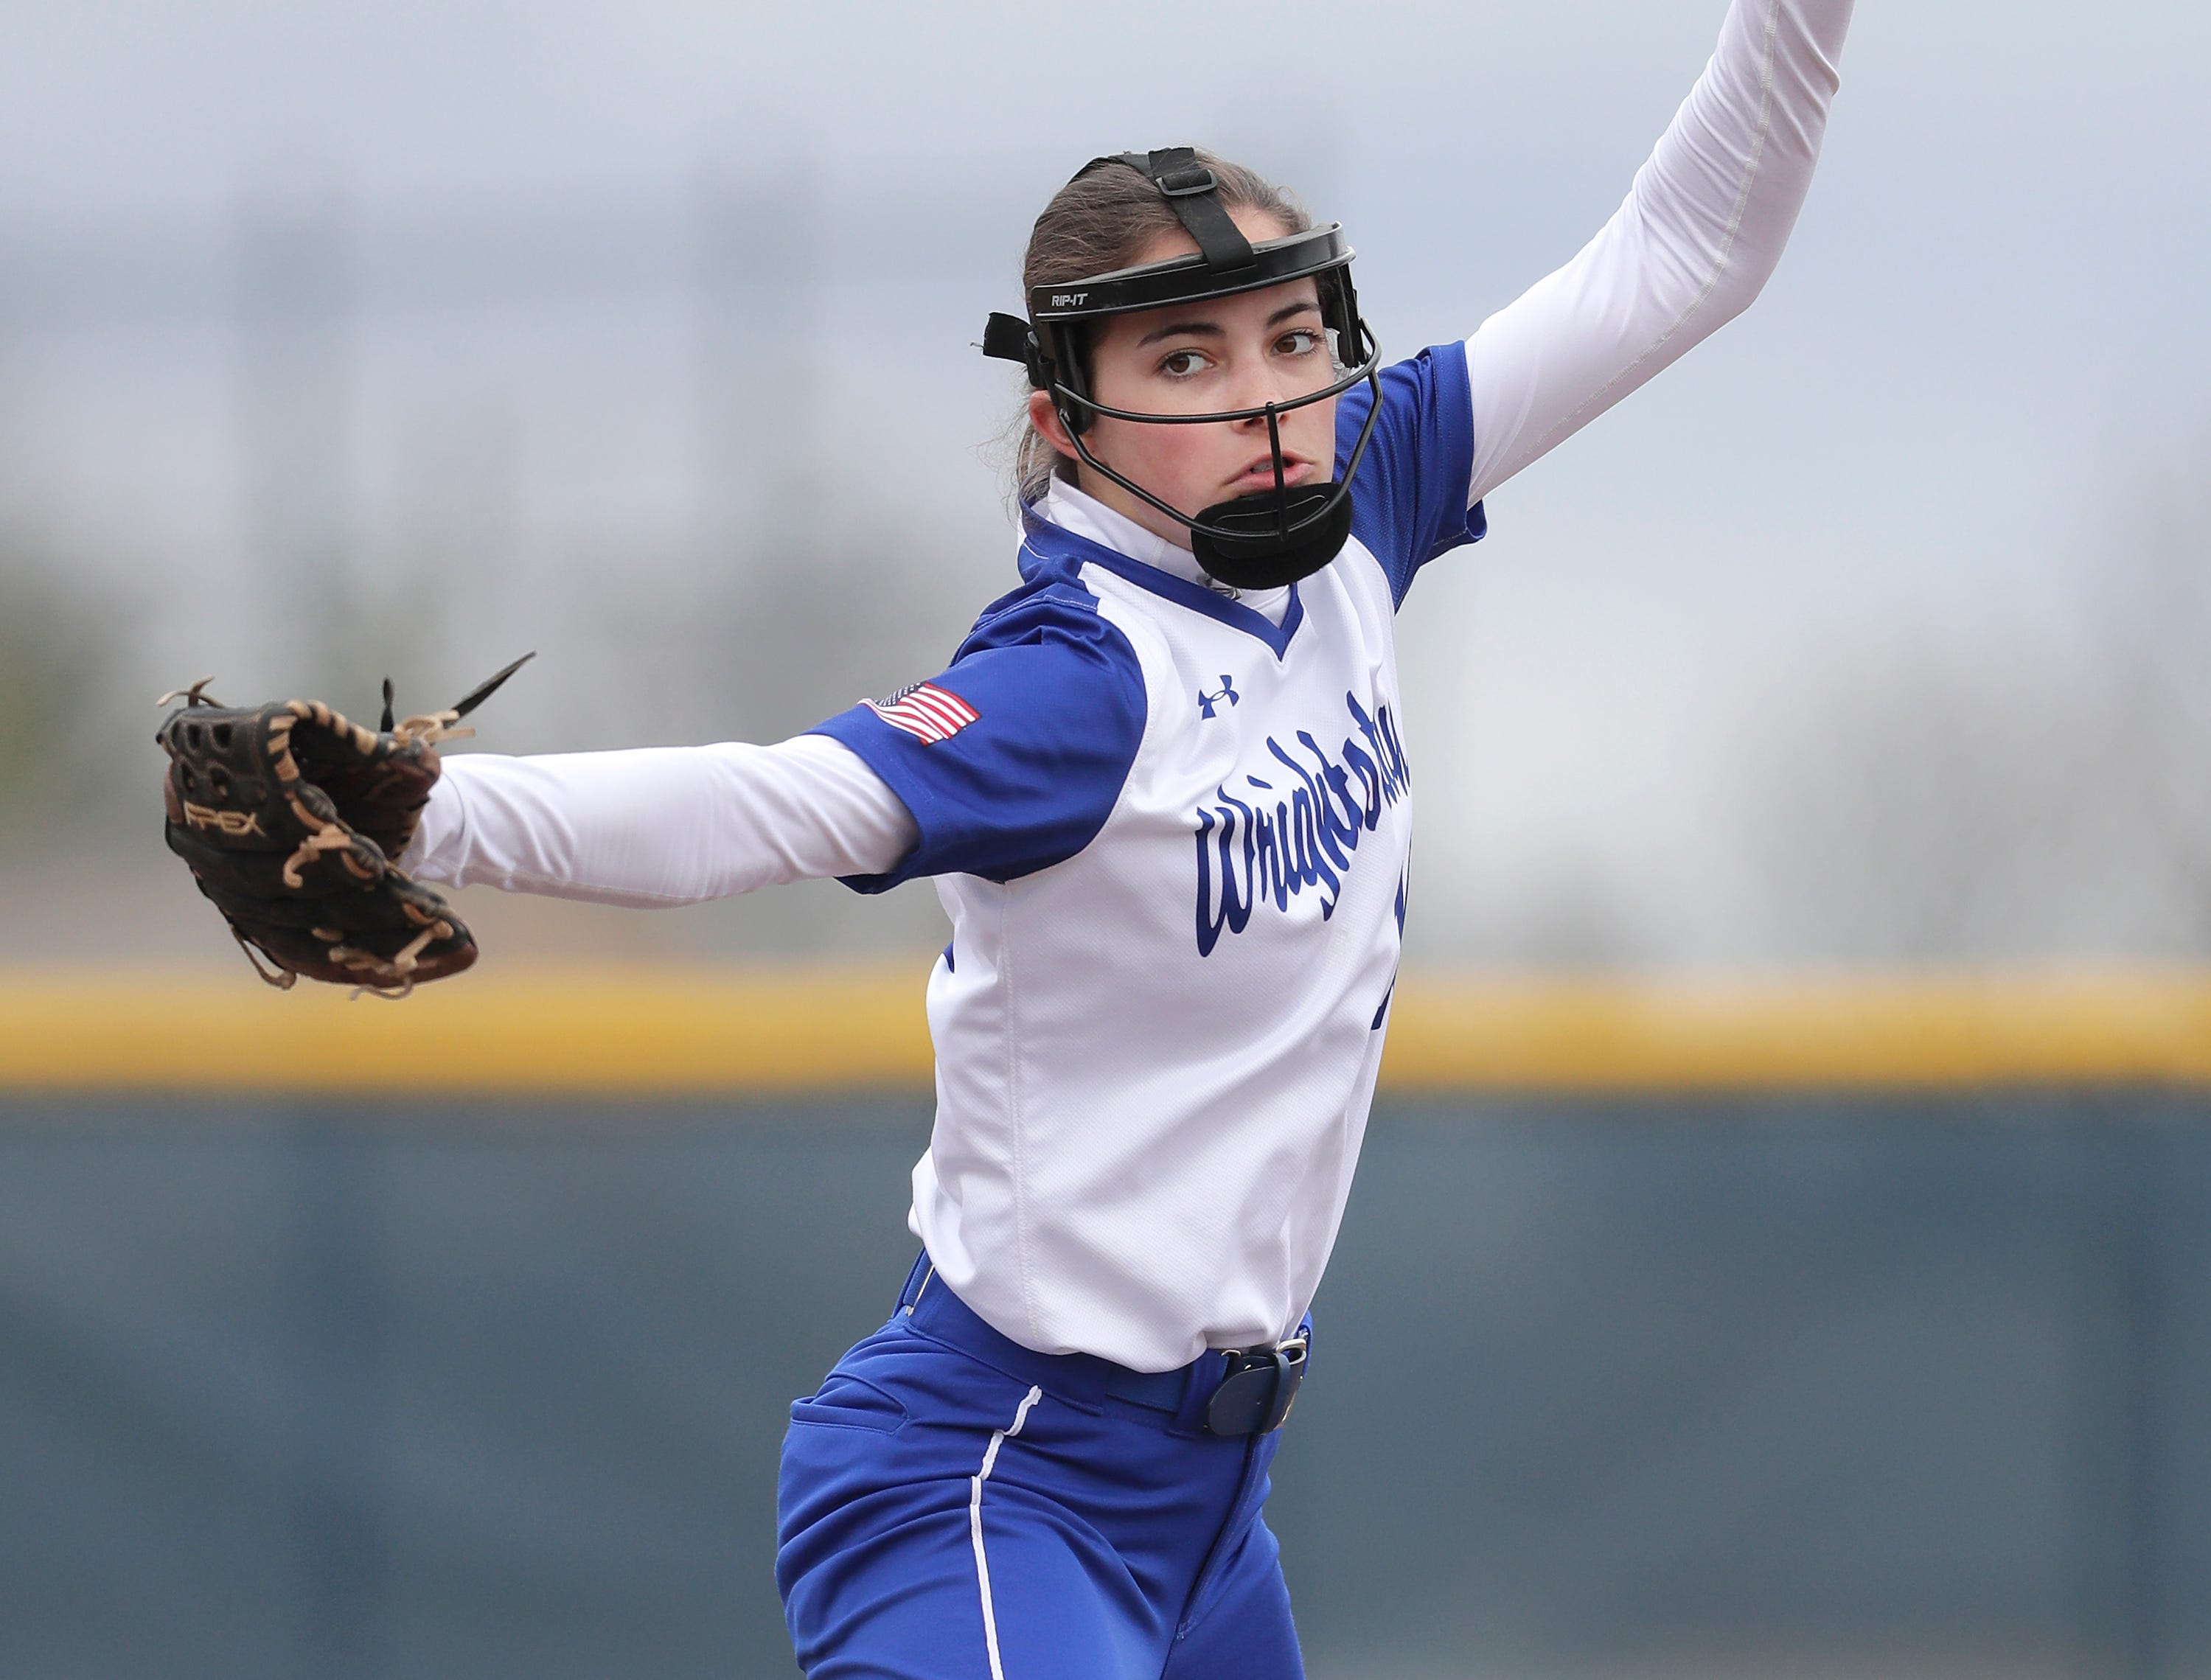 Wrightstown High School's starting pitcher #10 Ella Romenesko against Little Chute High School during their softball game on Friday, May 3, 2019, in Little Chute, Wis. Little Chute defeated Wrightstown 6 to 1.Wm. Glasheen/USA TODAY NETWORK-Wisconsin.